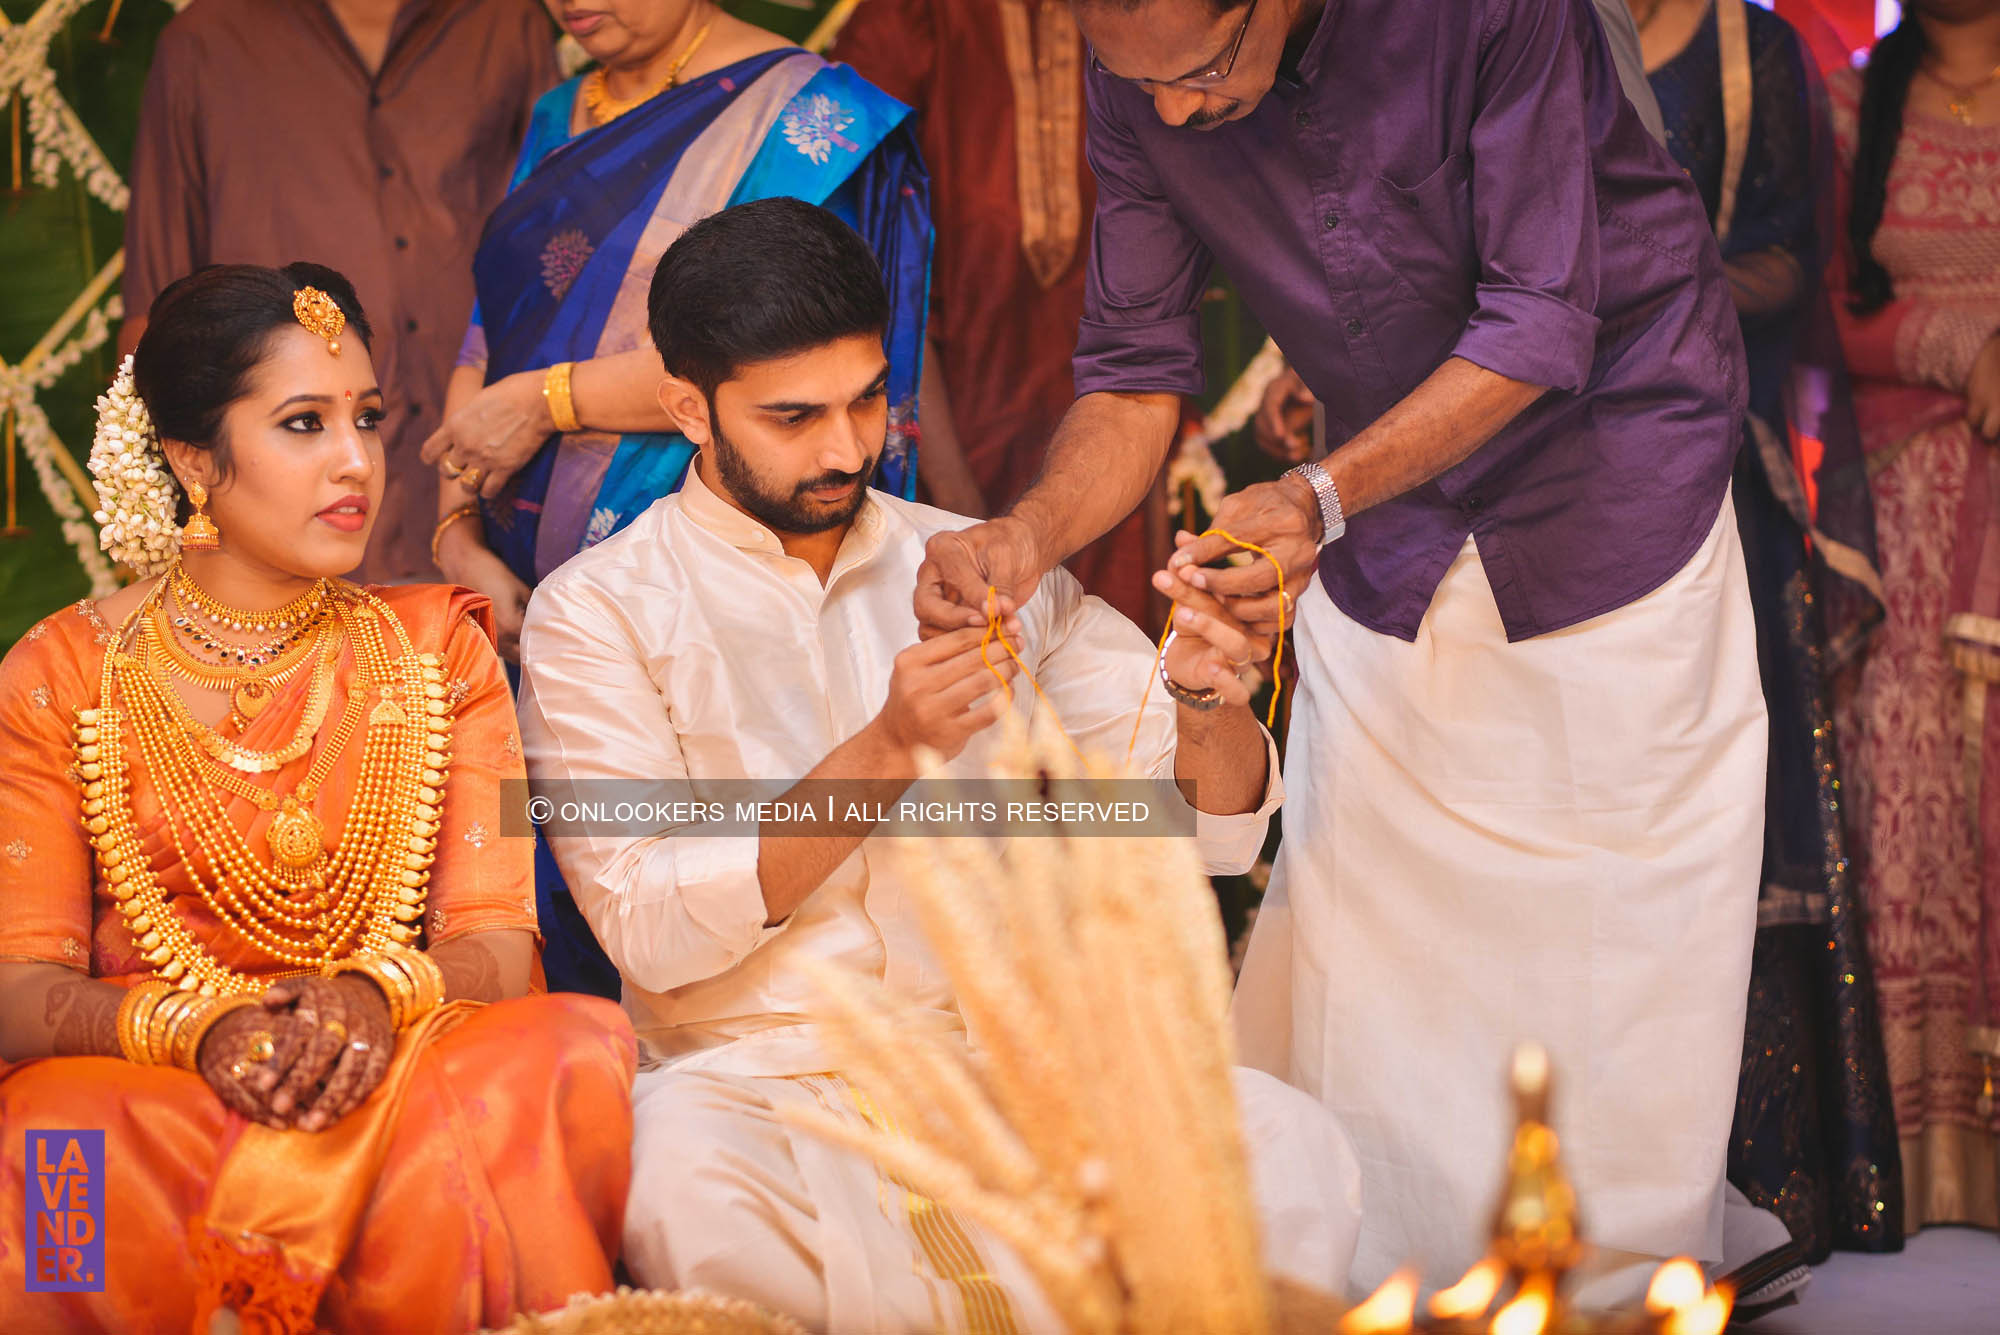 http://onlookersmedia.in/wp-content/uploads/2018/05/sreejith-vijay-wedding-stills-images-48.jpg